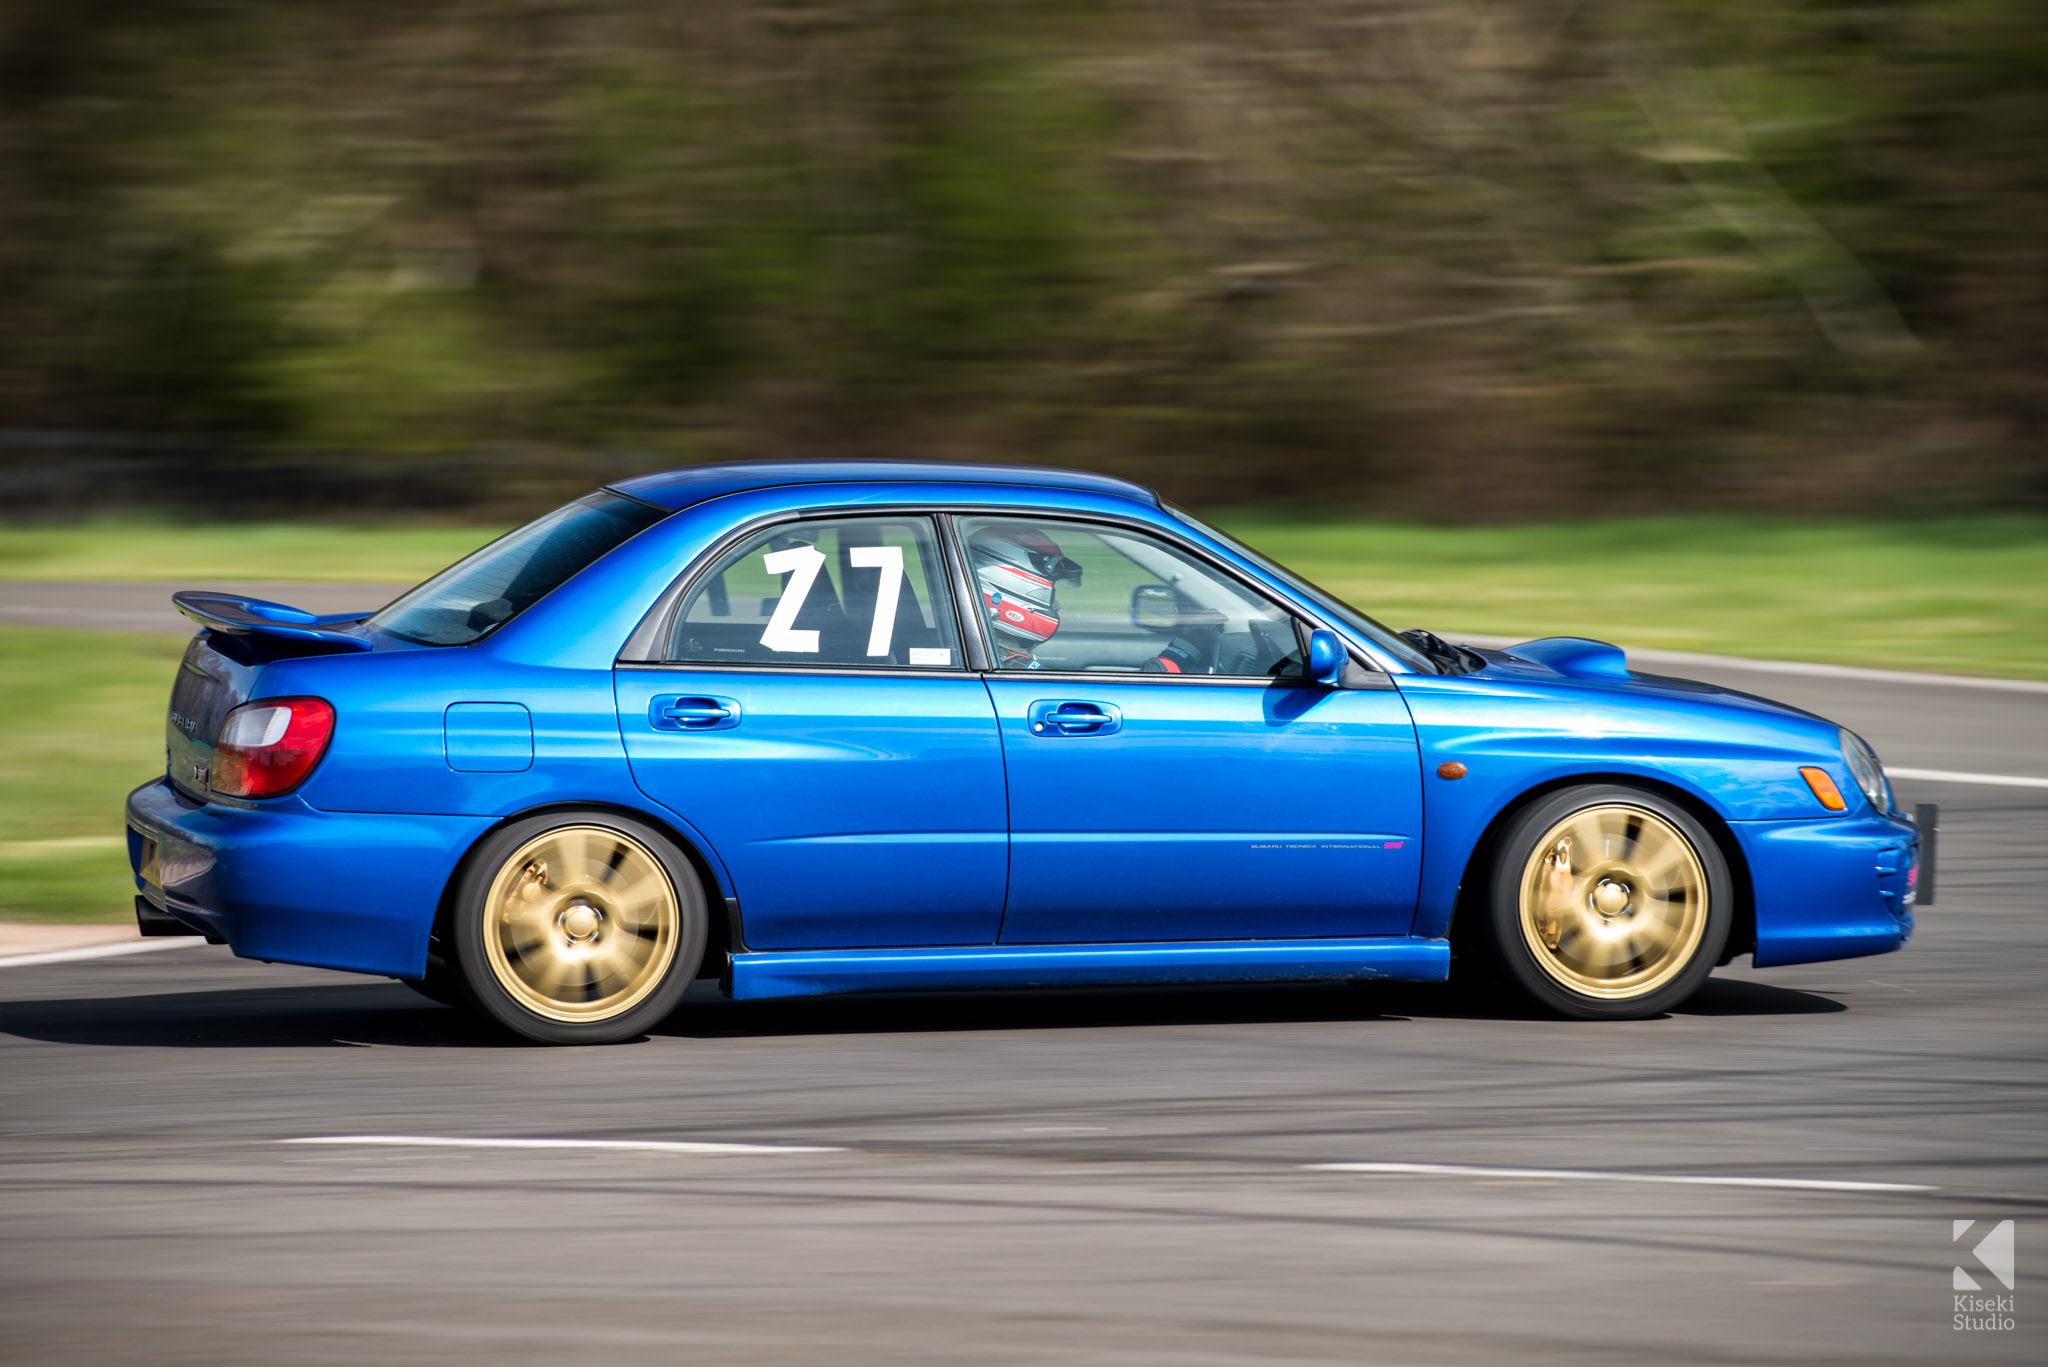 subaru-impreza-wrx-curborough-sprint-panning-turbo-fast-blue-gold